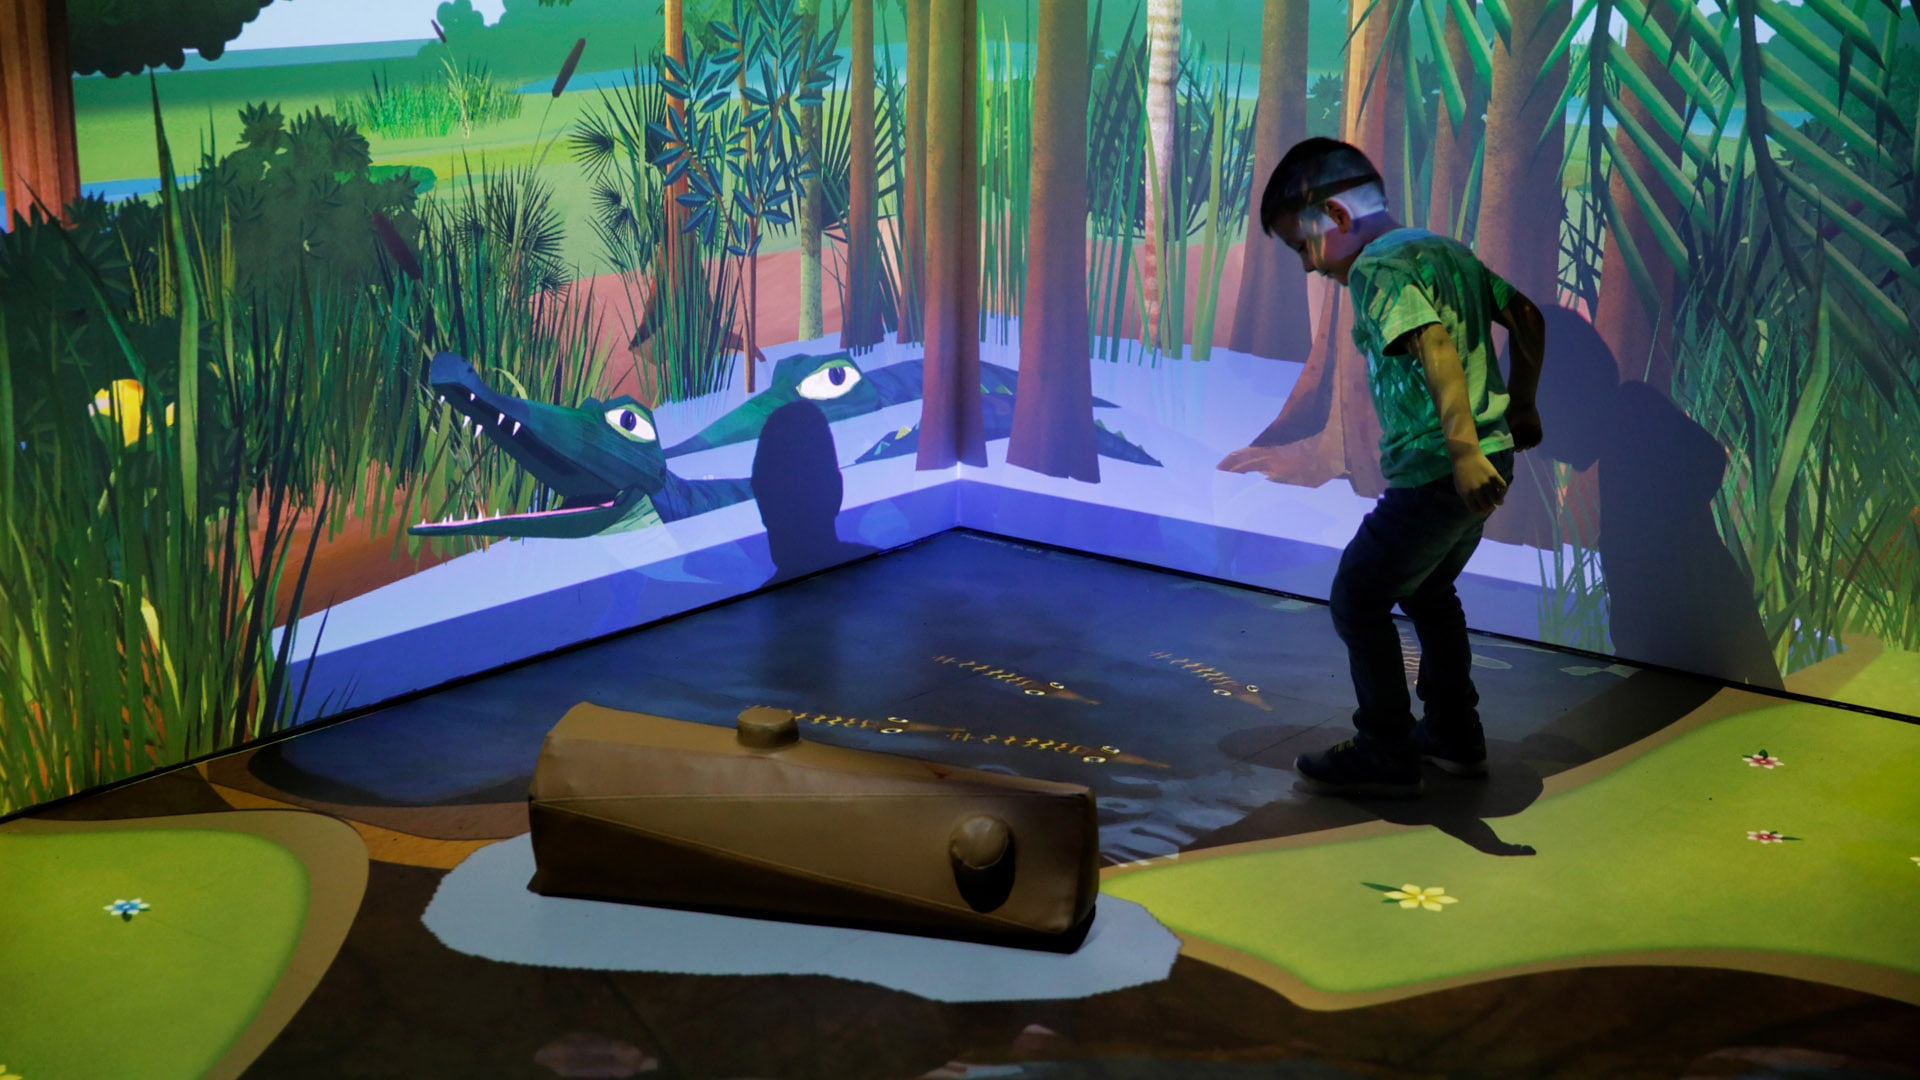 River Of Grass Interactive Wall And Floor Projection